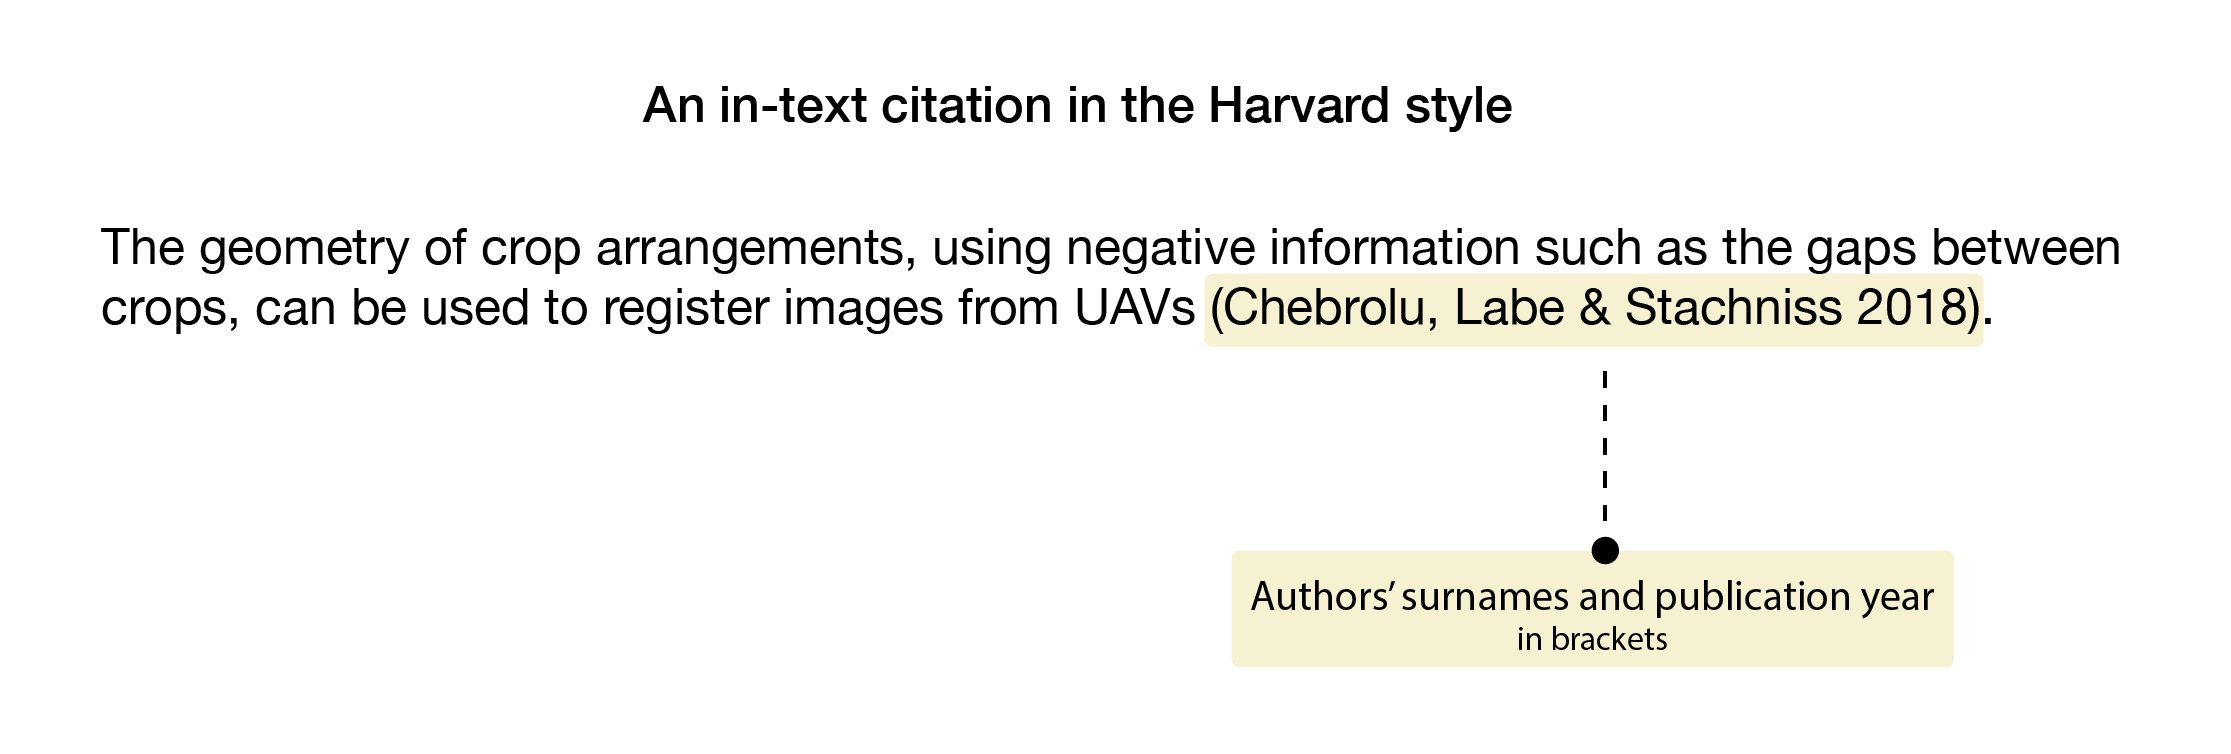 In-text citation with author surnames followed by the year of publishing in brackets at the end of a sentence that refers to supporting evidence.